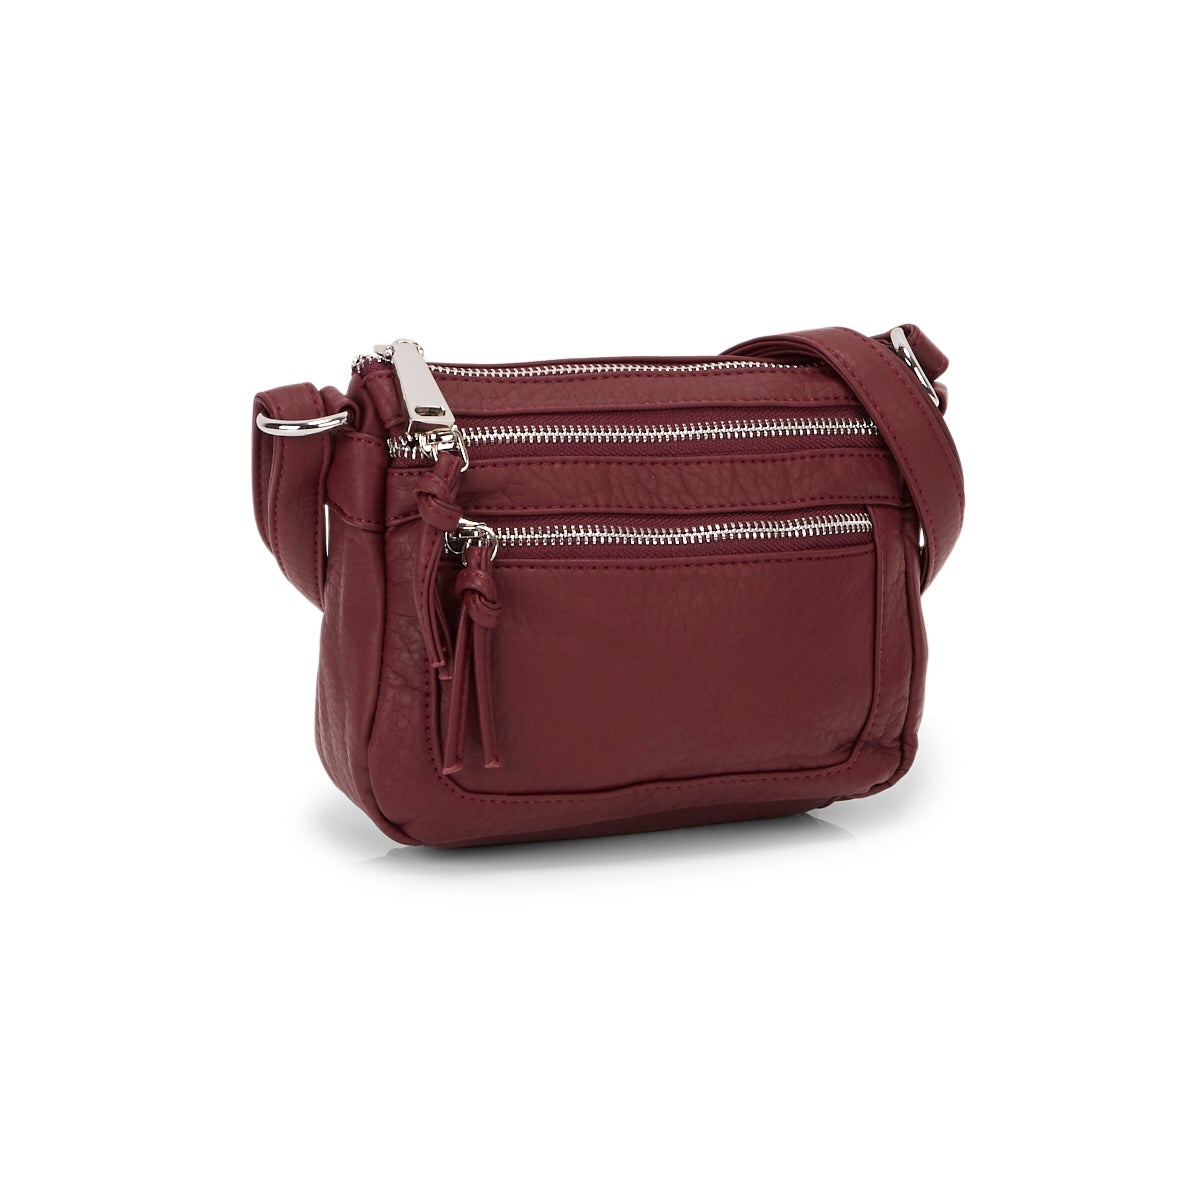 Lds Washed Vintage berry small crossbody